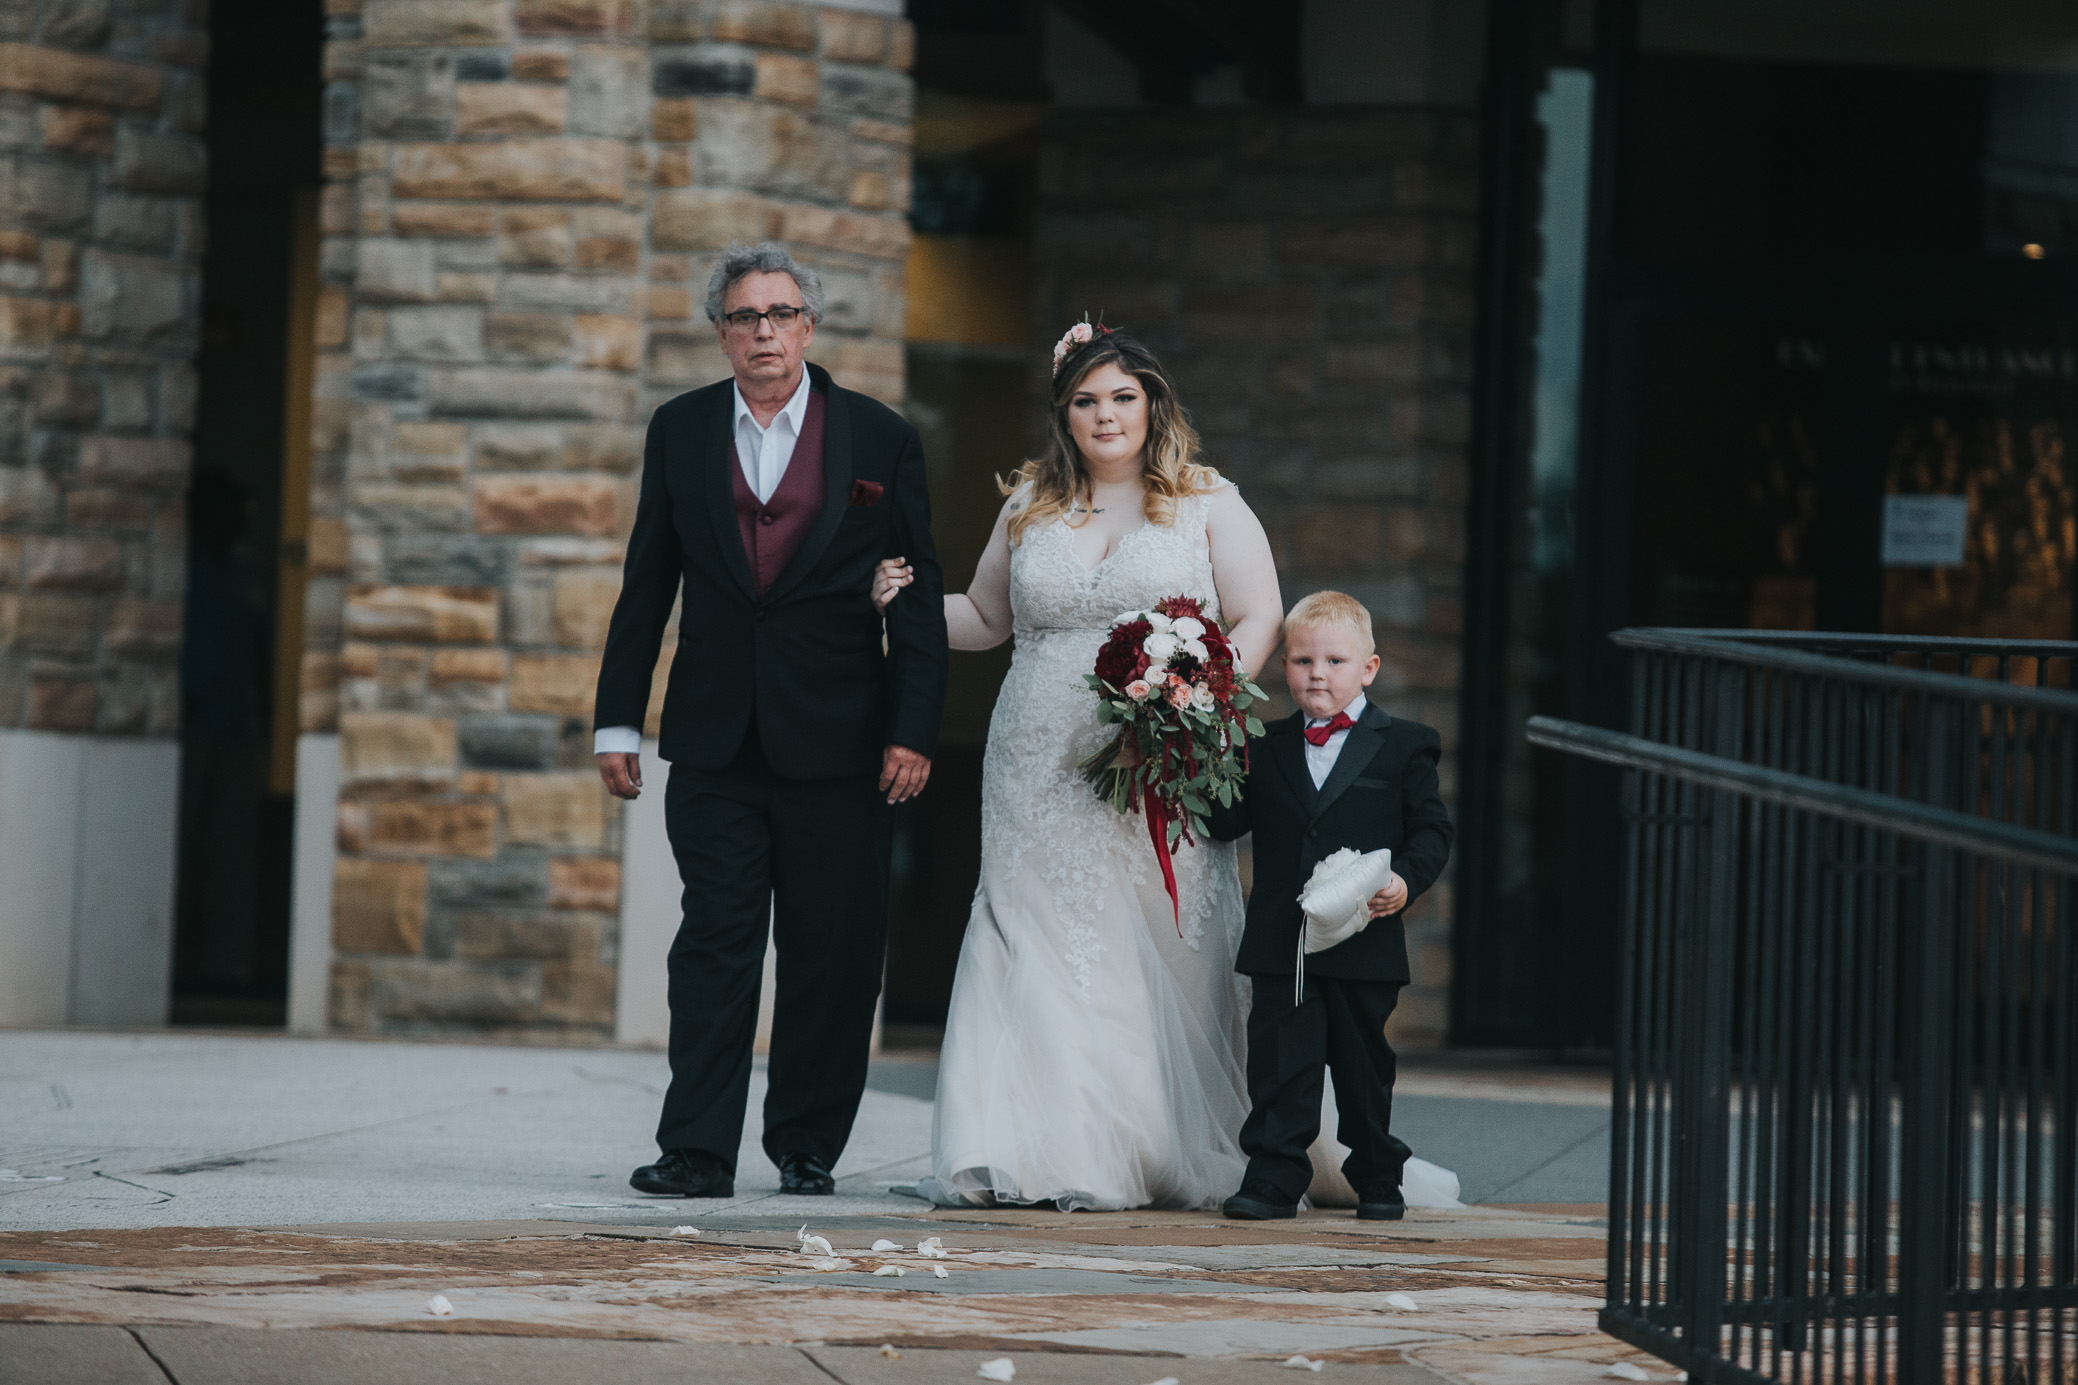 Vulcan Park wedding photography in Birmingham, Alabama on June 16th, 2018 by David A. Smith of DSmithImages Wedding Photography, Portraits, and Events